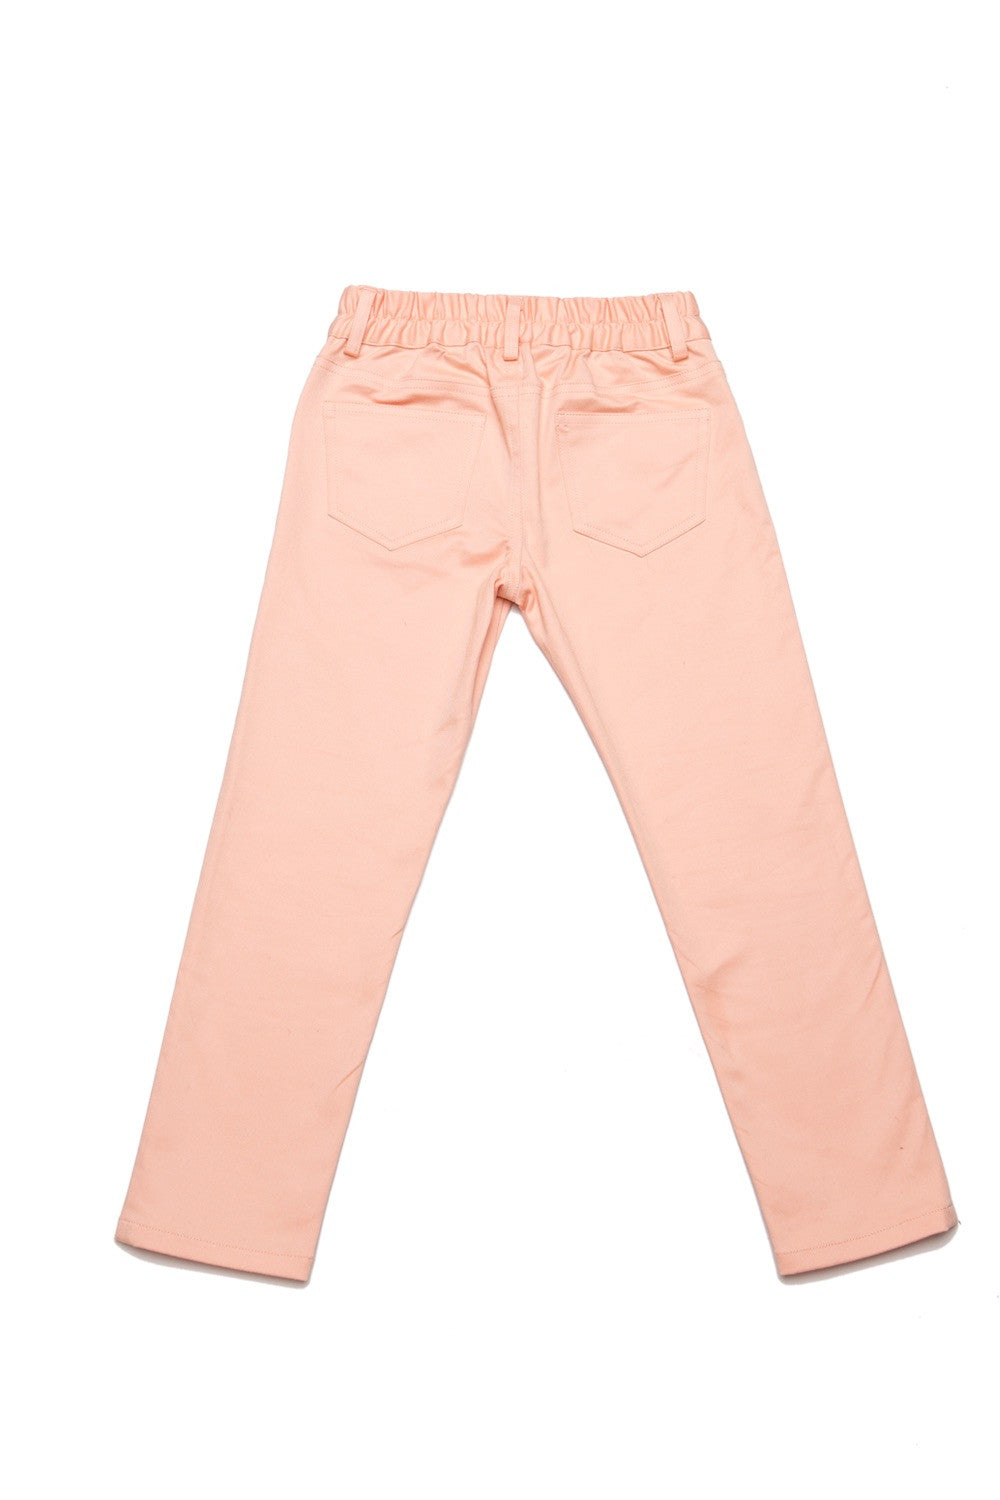 Peach Trousers